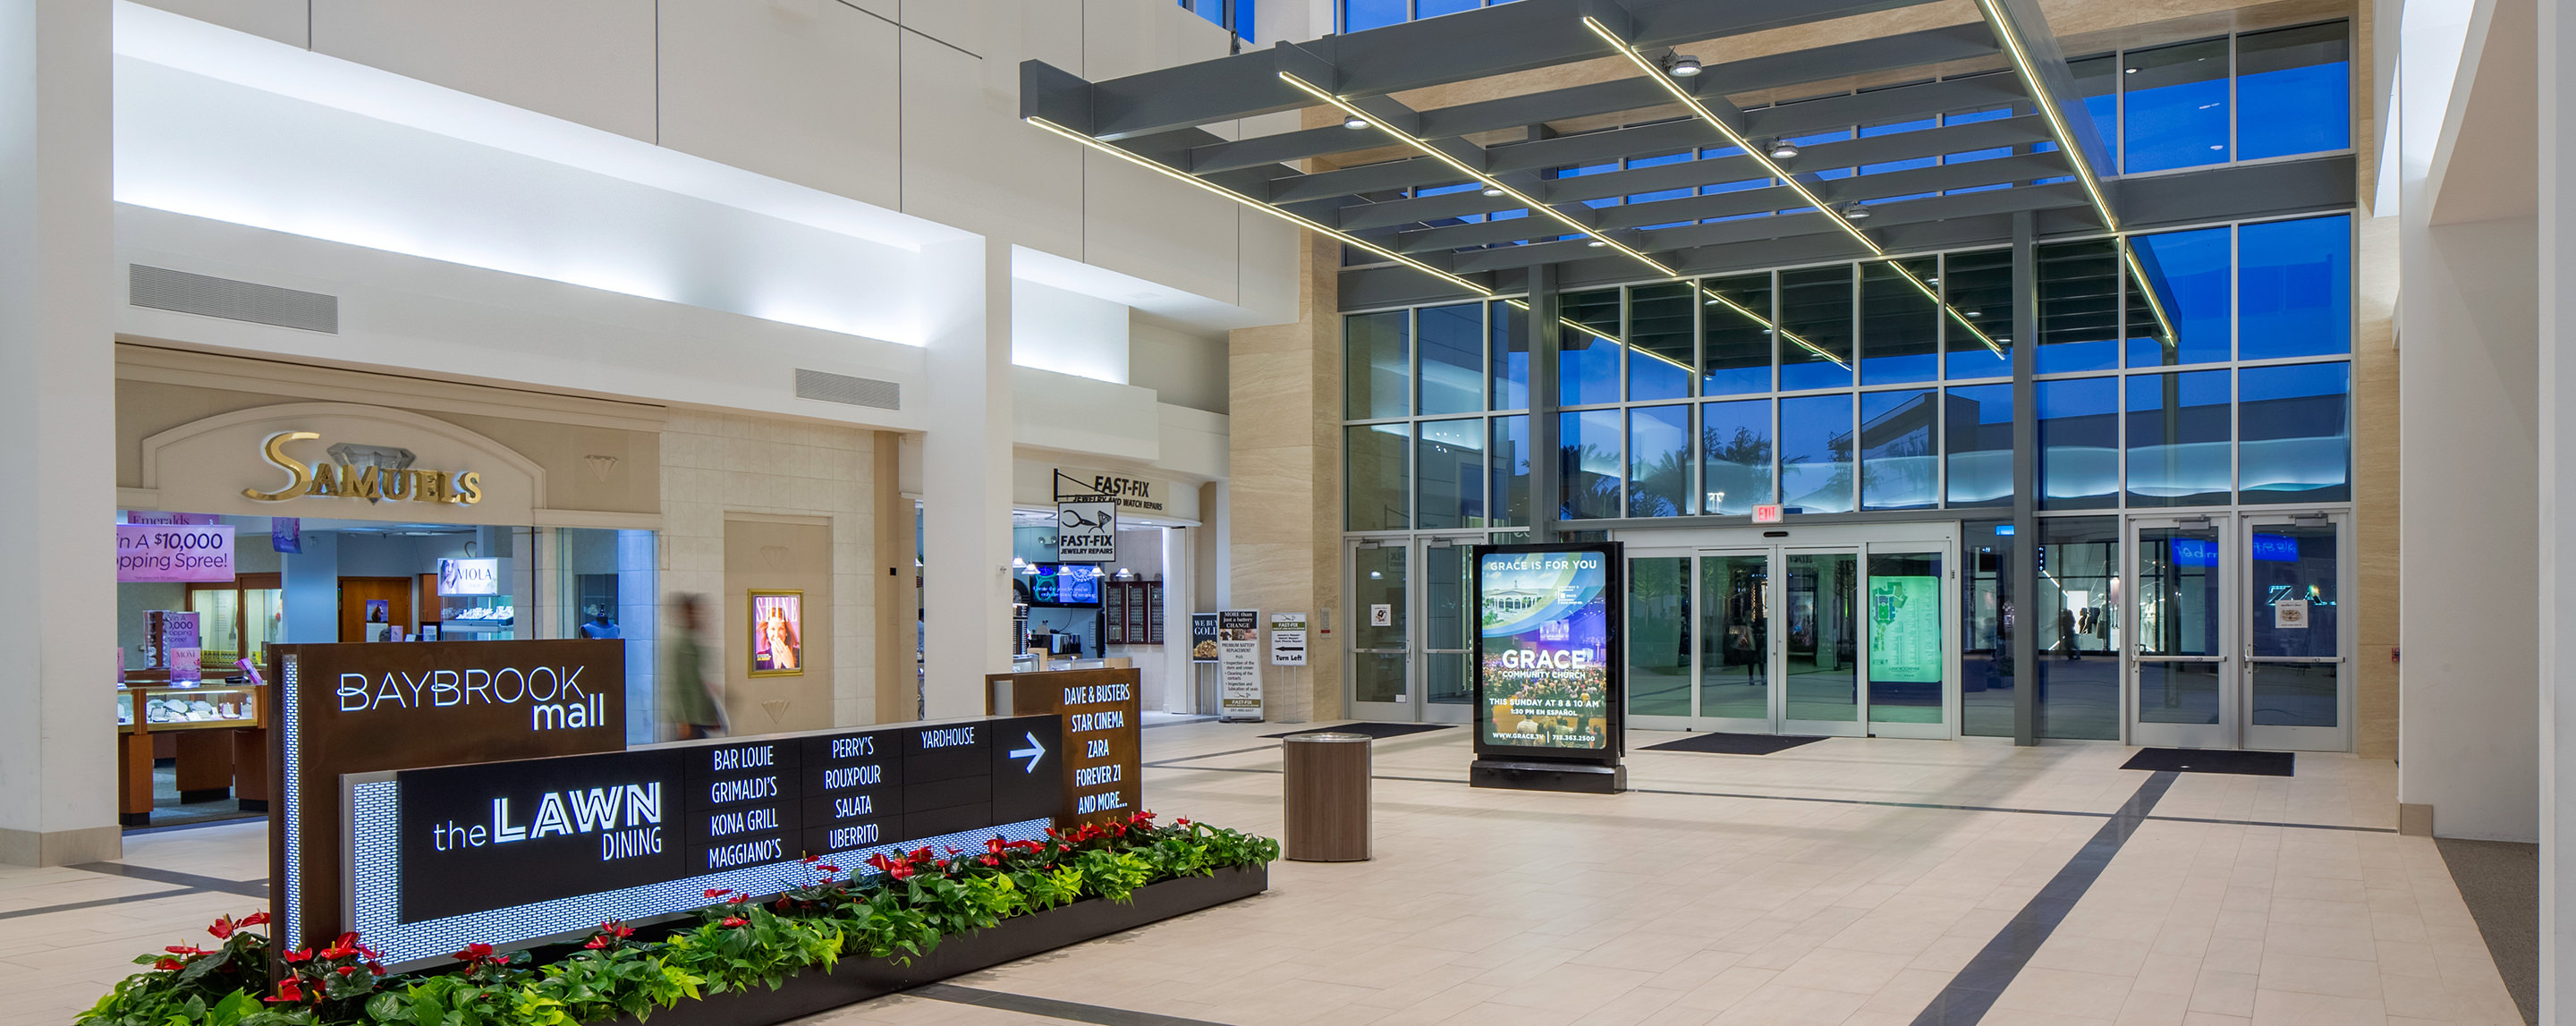 Just inside the Baybrook Mall entrance, you can see information signs to help guide shoppers to desired destinations.